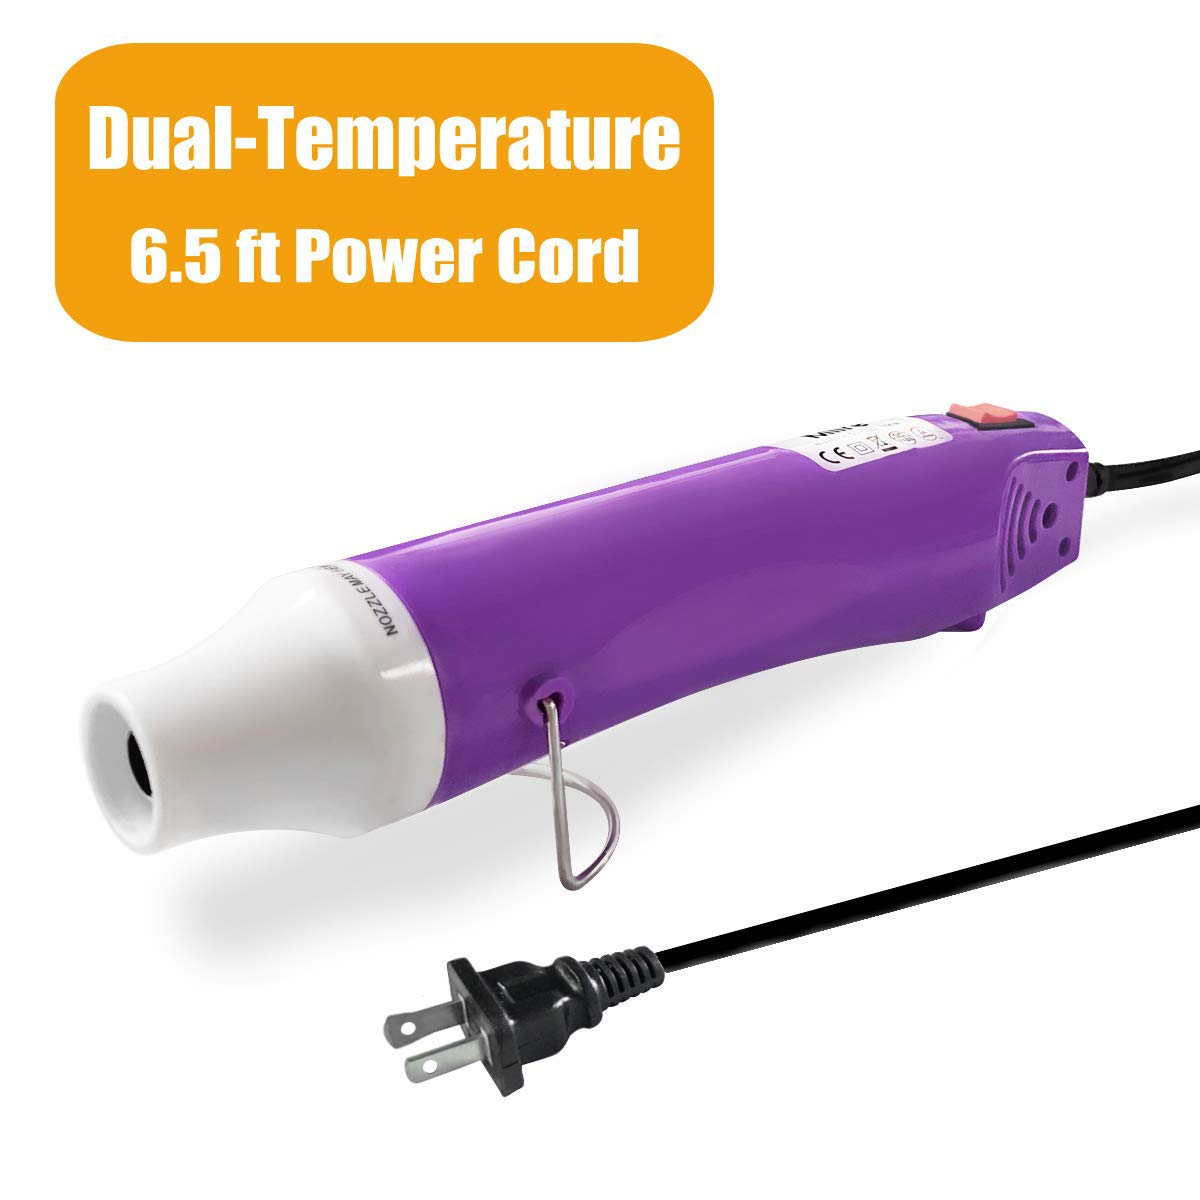 Mlife Mini Heat Gun - 300 Watt - Dual-Temperature Heat Tool with 6.5FT Power Cord for DIY Acrylic Resin Cups Tumblers Embossing Shrink Wrapping Paint Drying Crafts Electronics DIY (Purple)